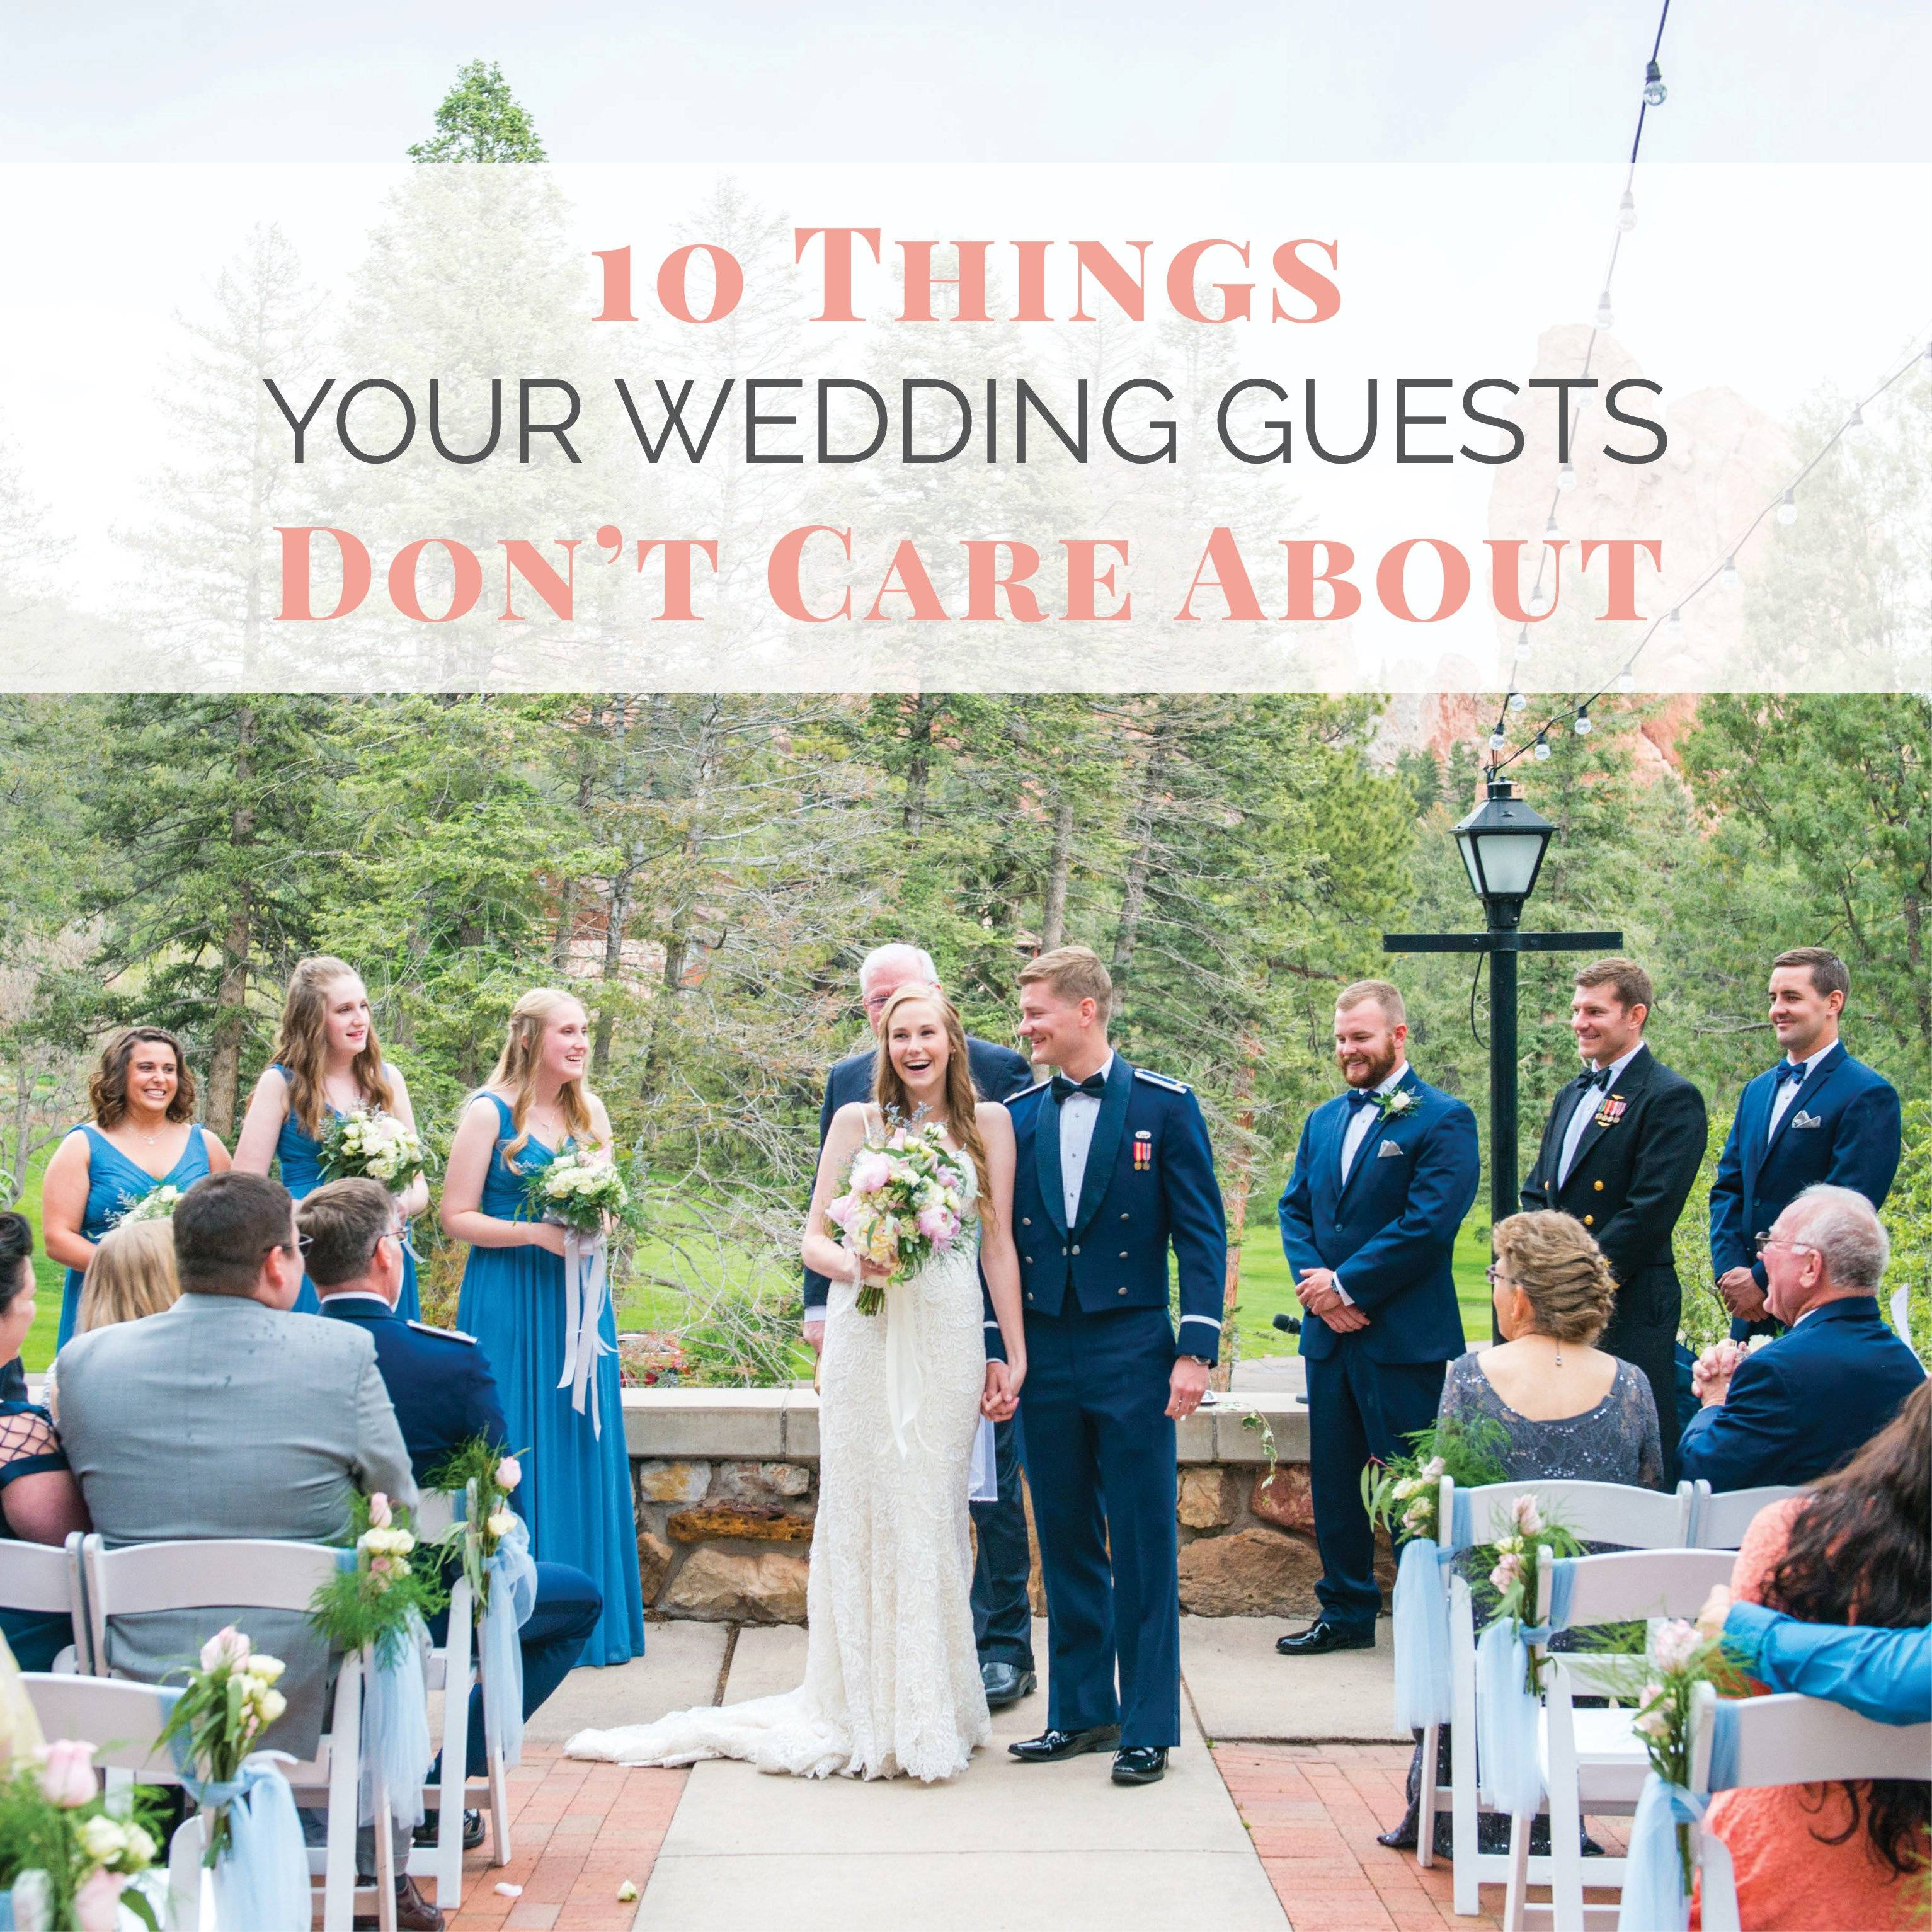 10 Things Your Wedding Guests Dont Care About 3067x